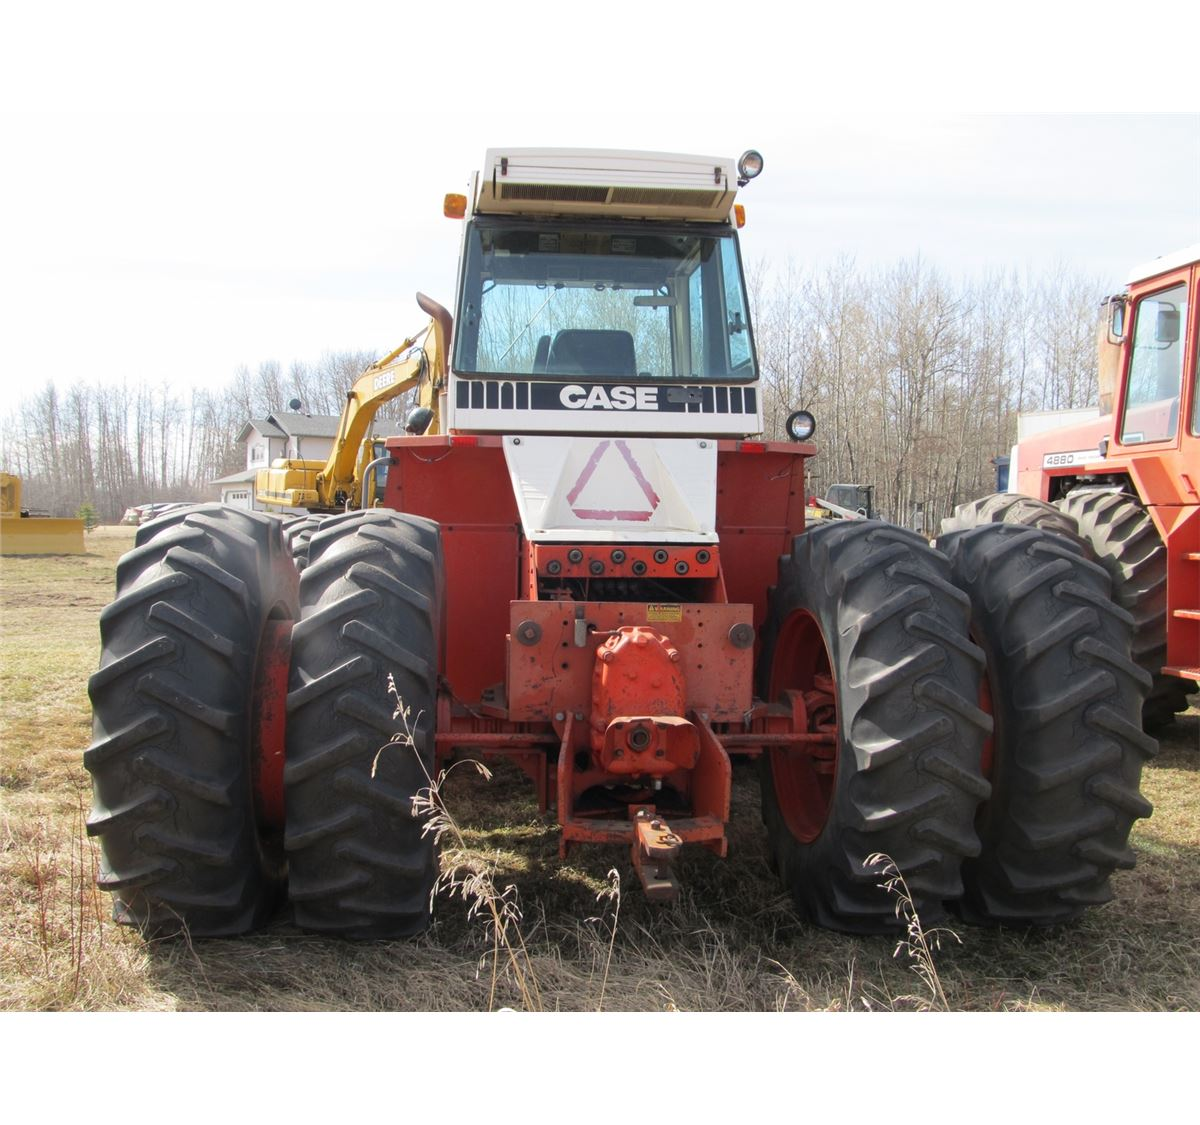 Case 4490 Tractor : Case wd cahr tractor